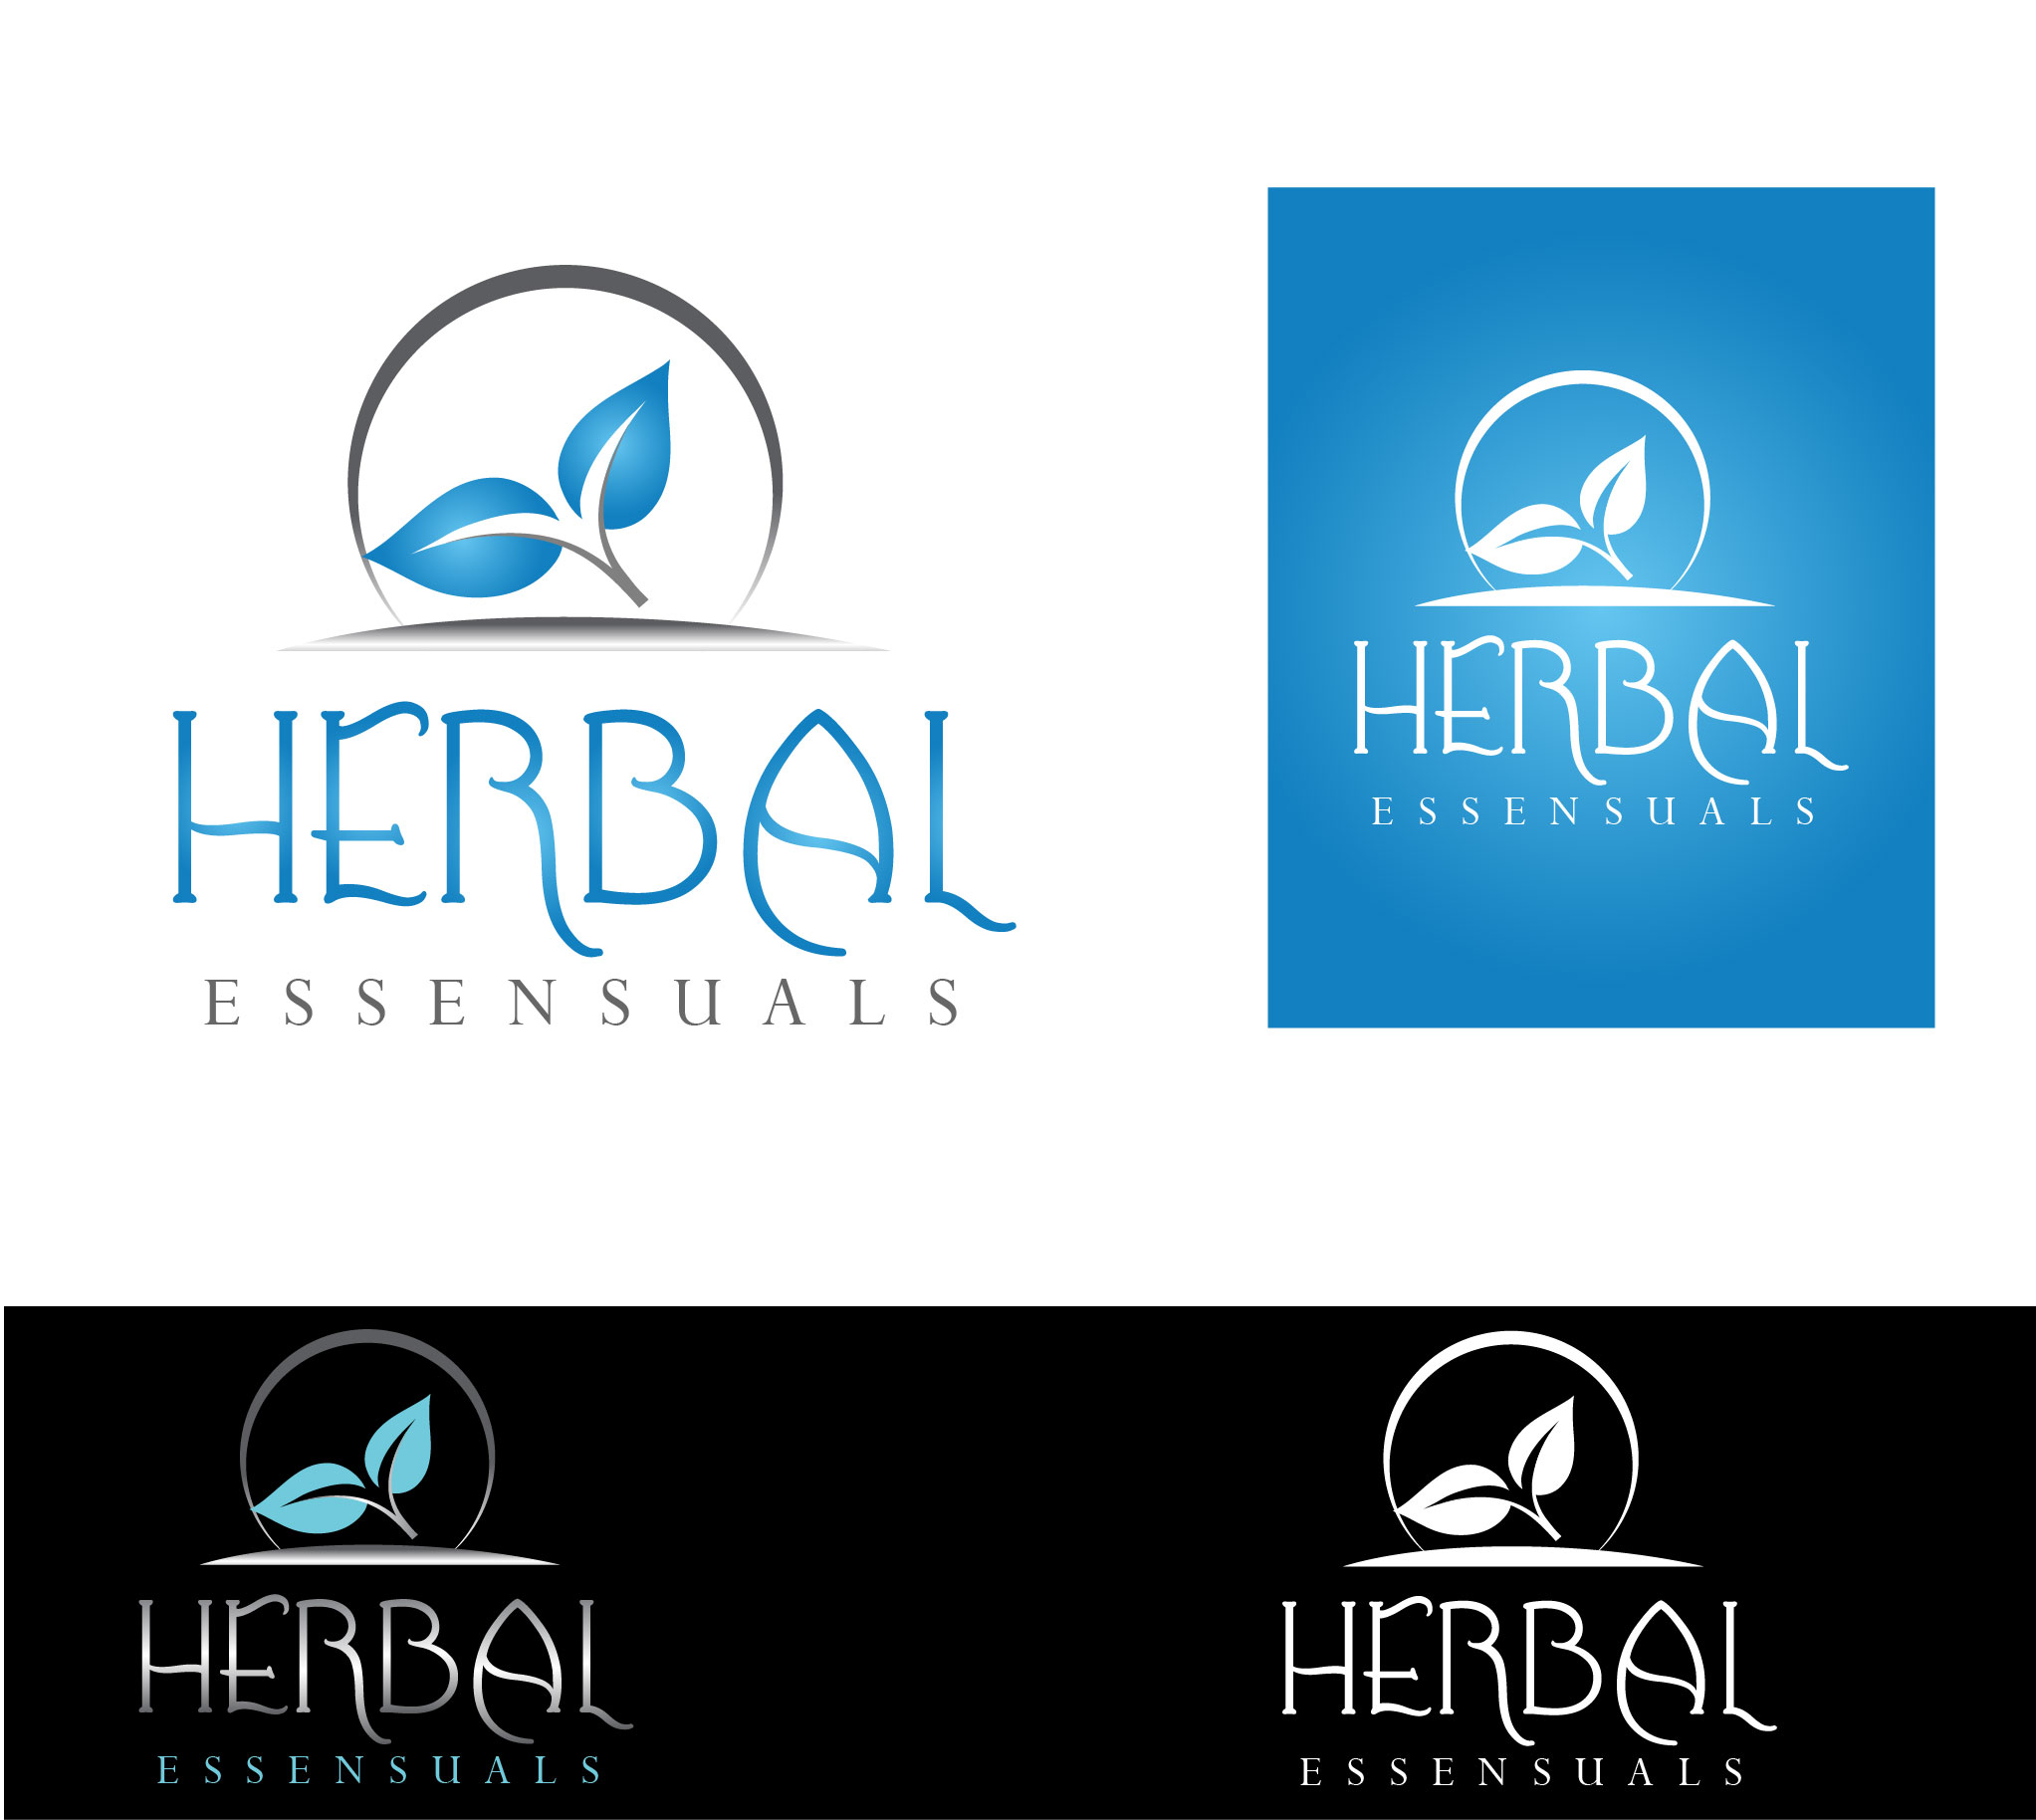 Logo Design by Darina Dimitrova - Entry No. 44 in the Logo Design Contest Captivating Logo Design for Herbal Essensuals.